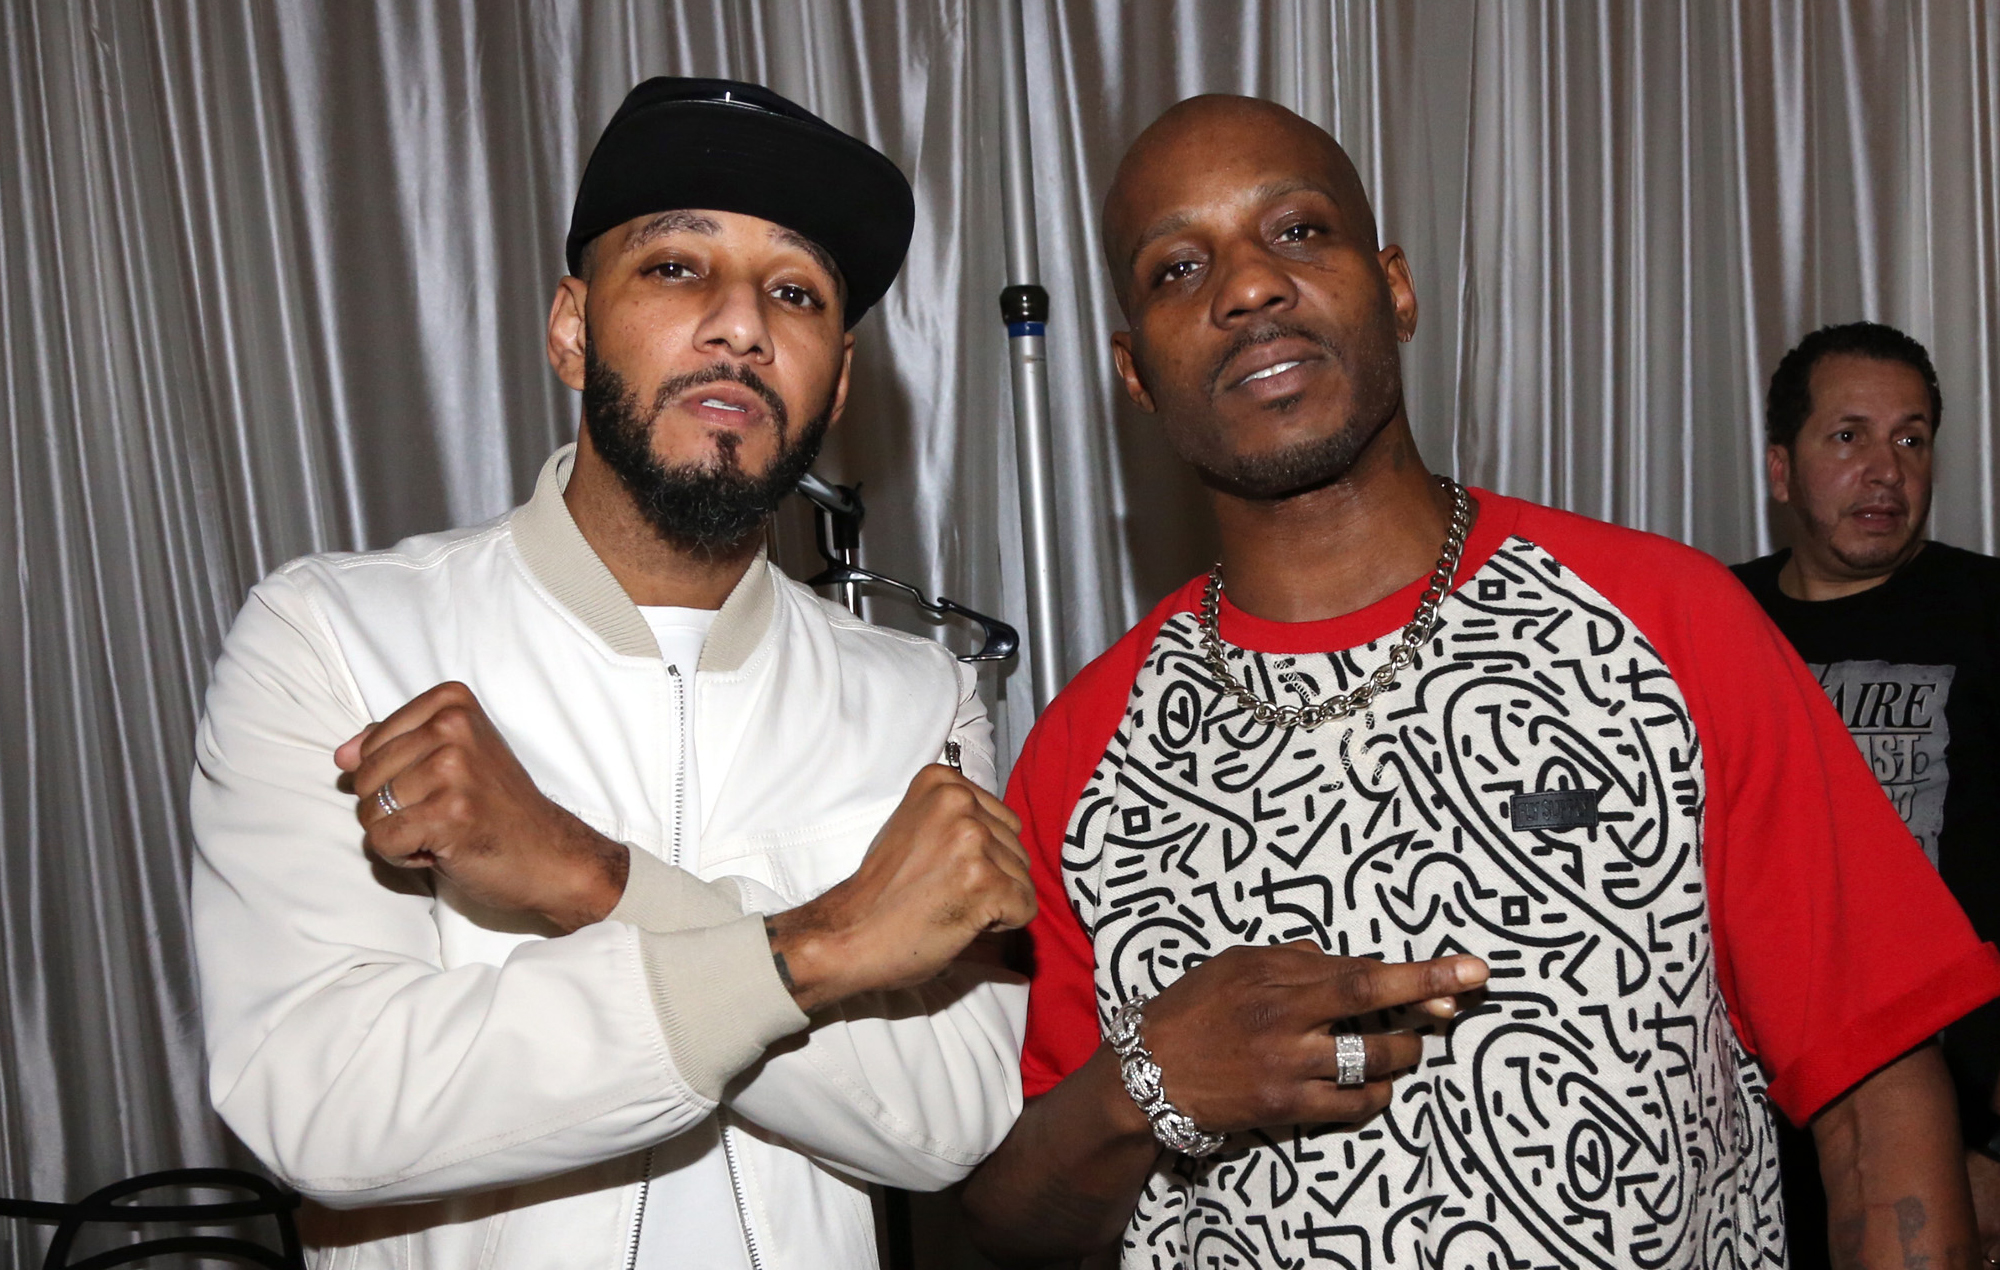 Posthumous DMX song Been To War with Swizz Beatz and French Montana released